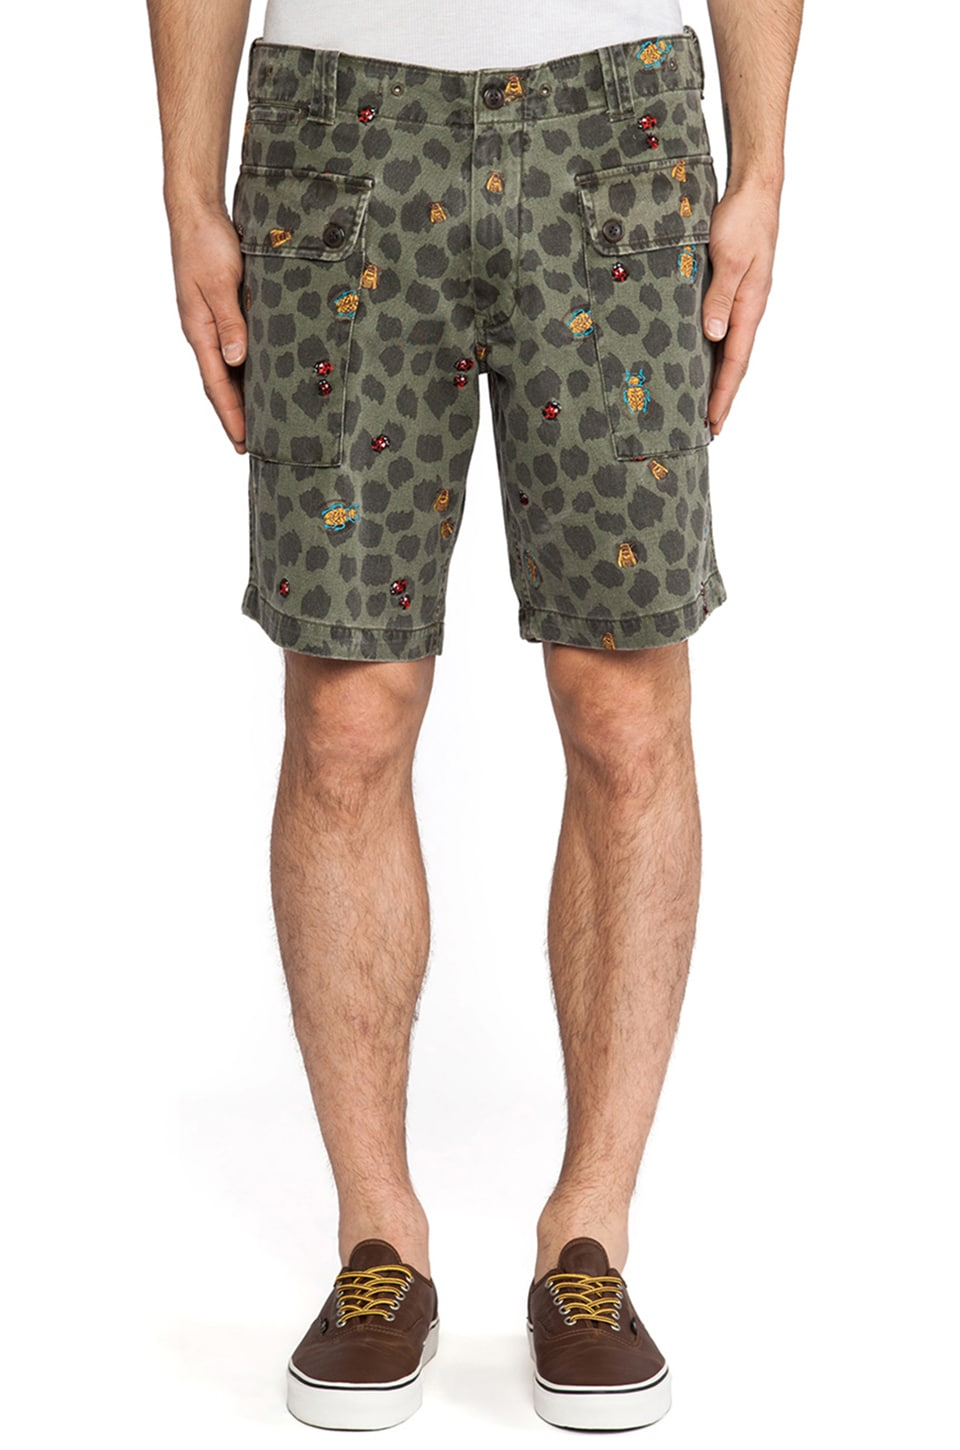 Burkman Bros. Big Pocket Cargo Short in Olive Leopard